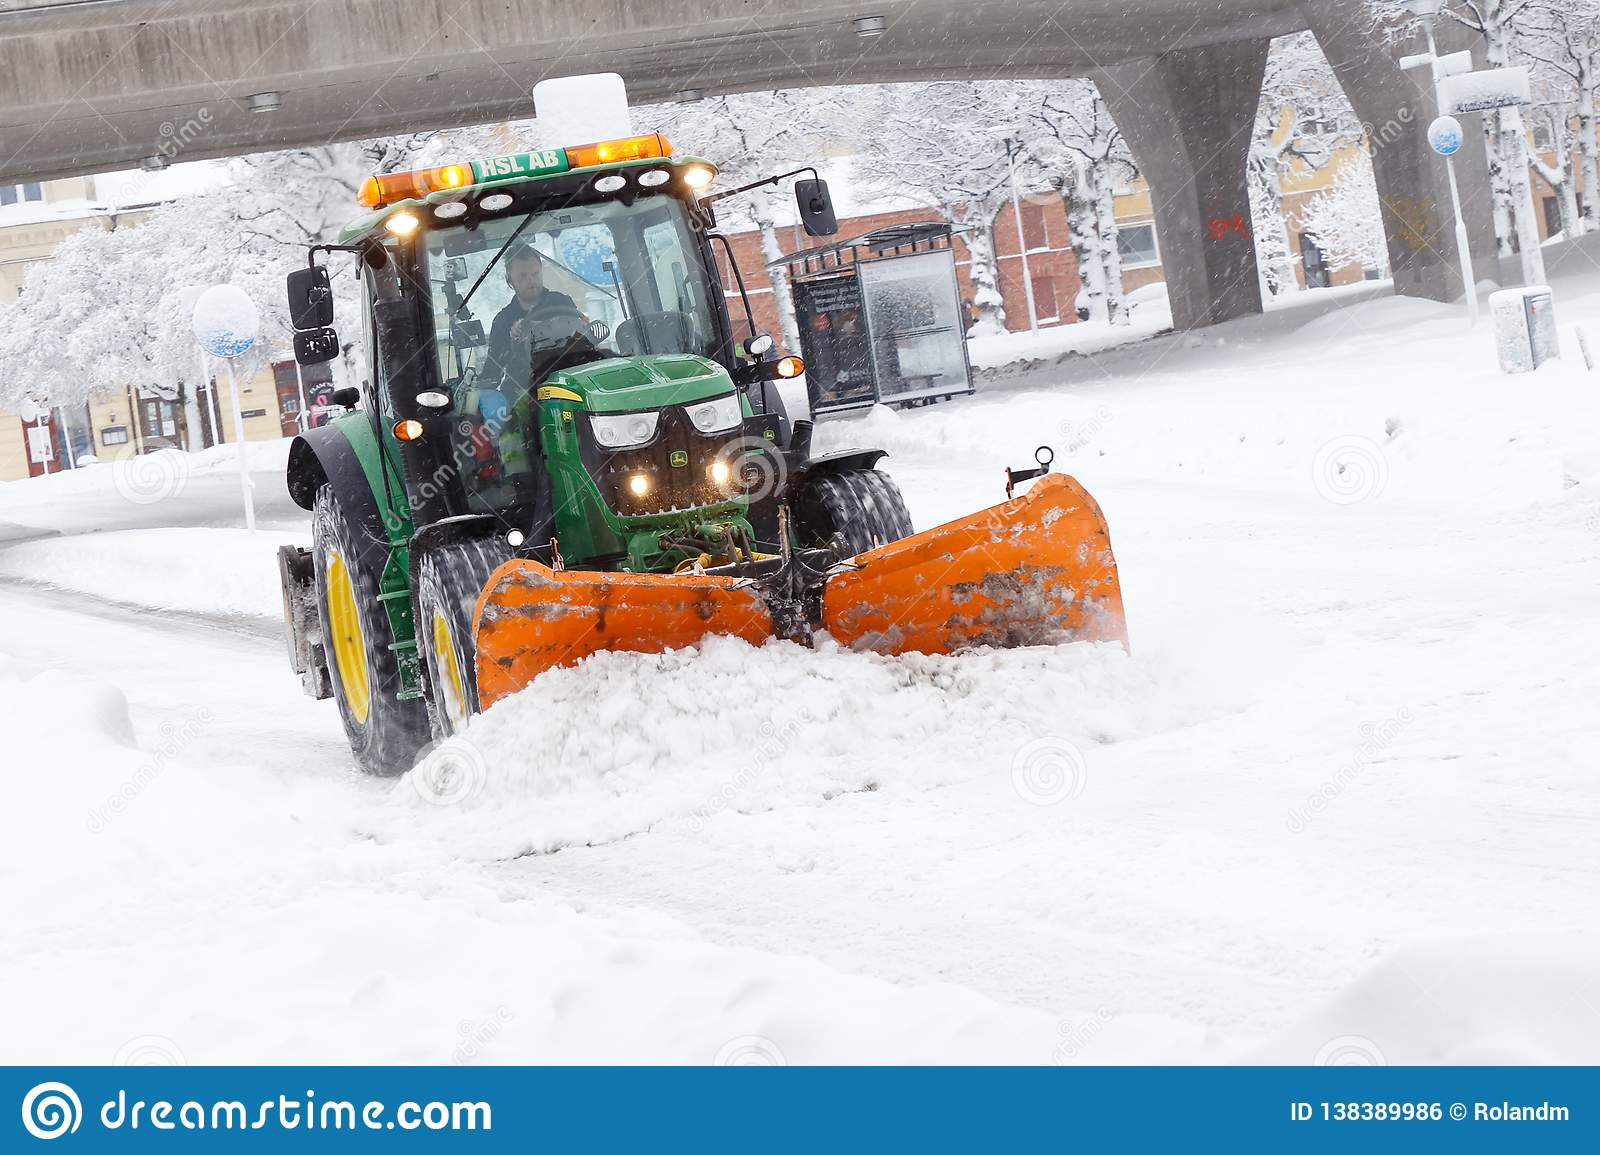 John Deere Snow Plow Tractor Plowing Snow Editorial Photo Image Of Green 138389986